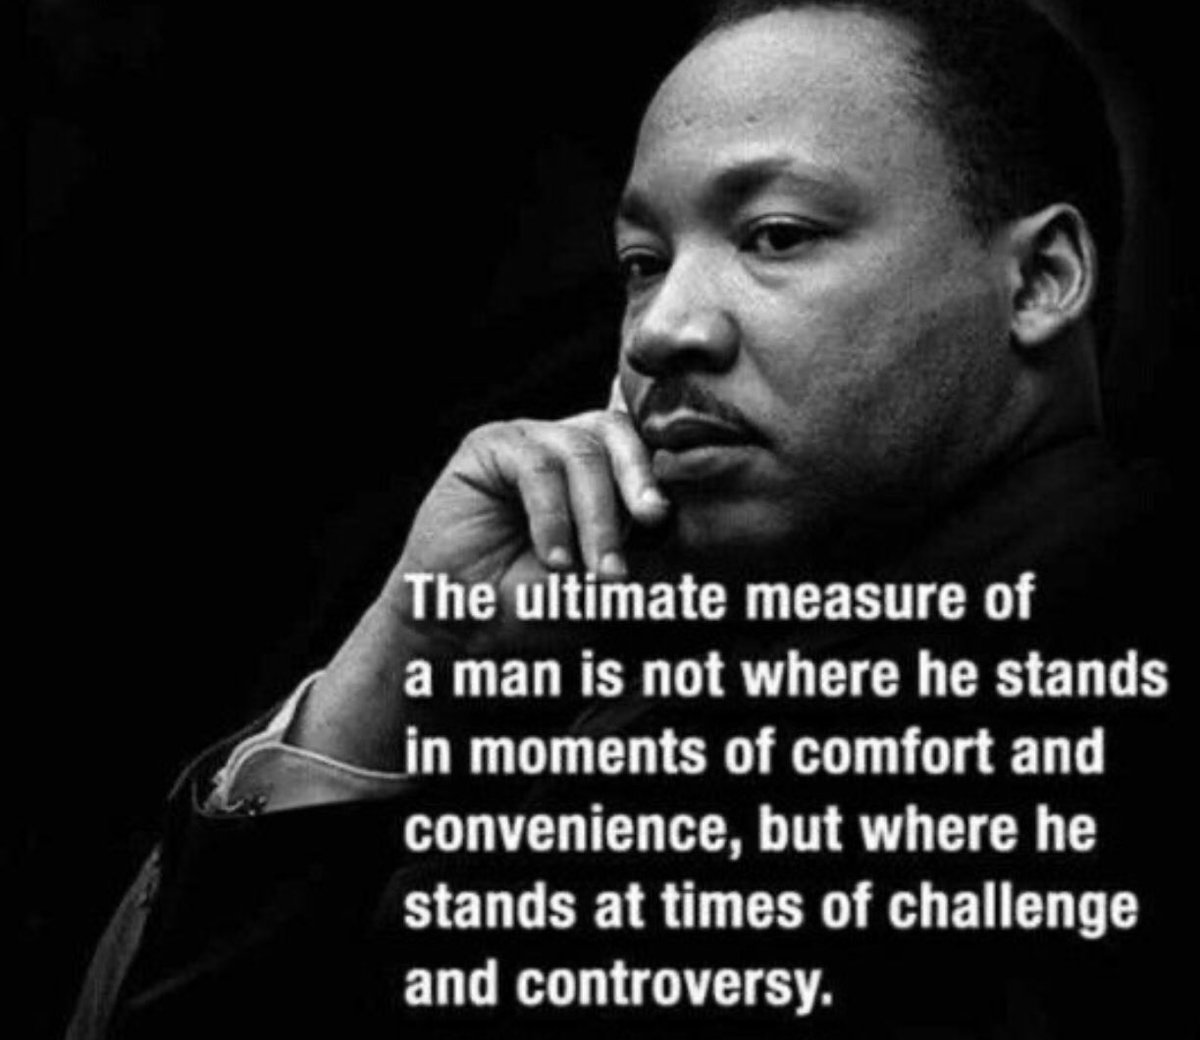 One of my favorite Martin Luther King quotes on #MLKDay